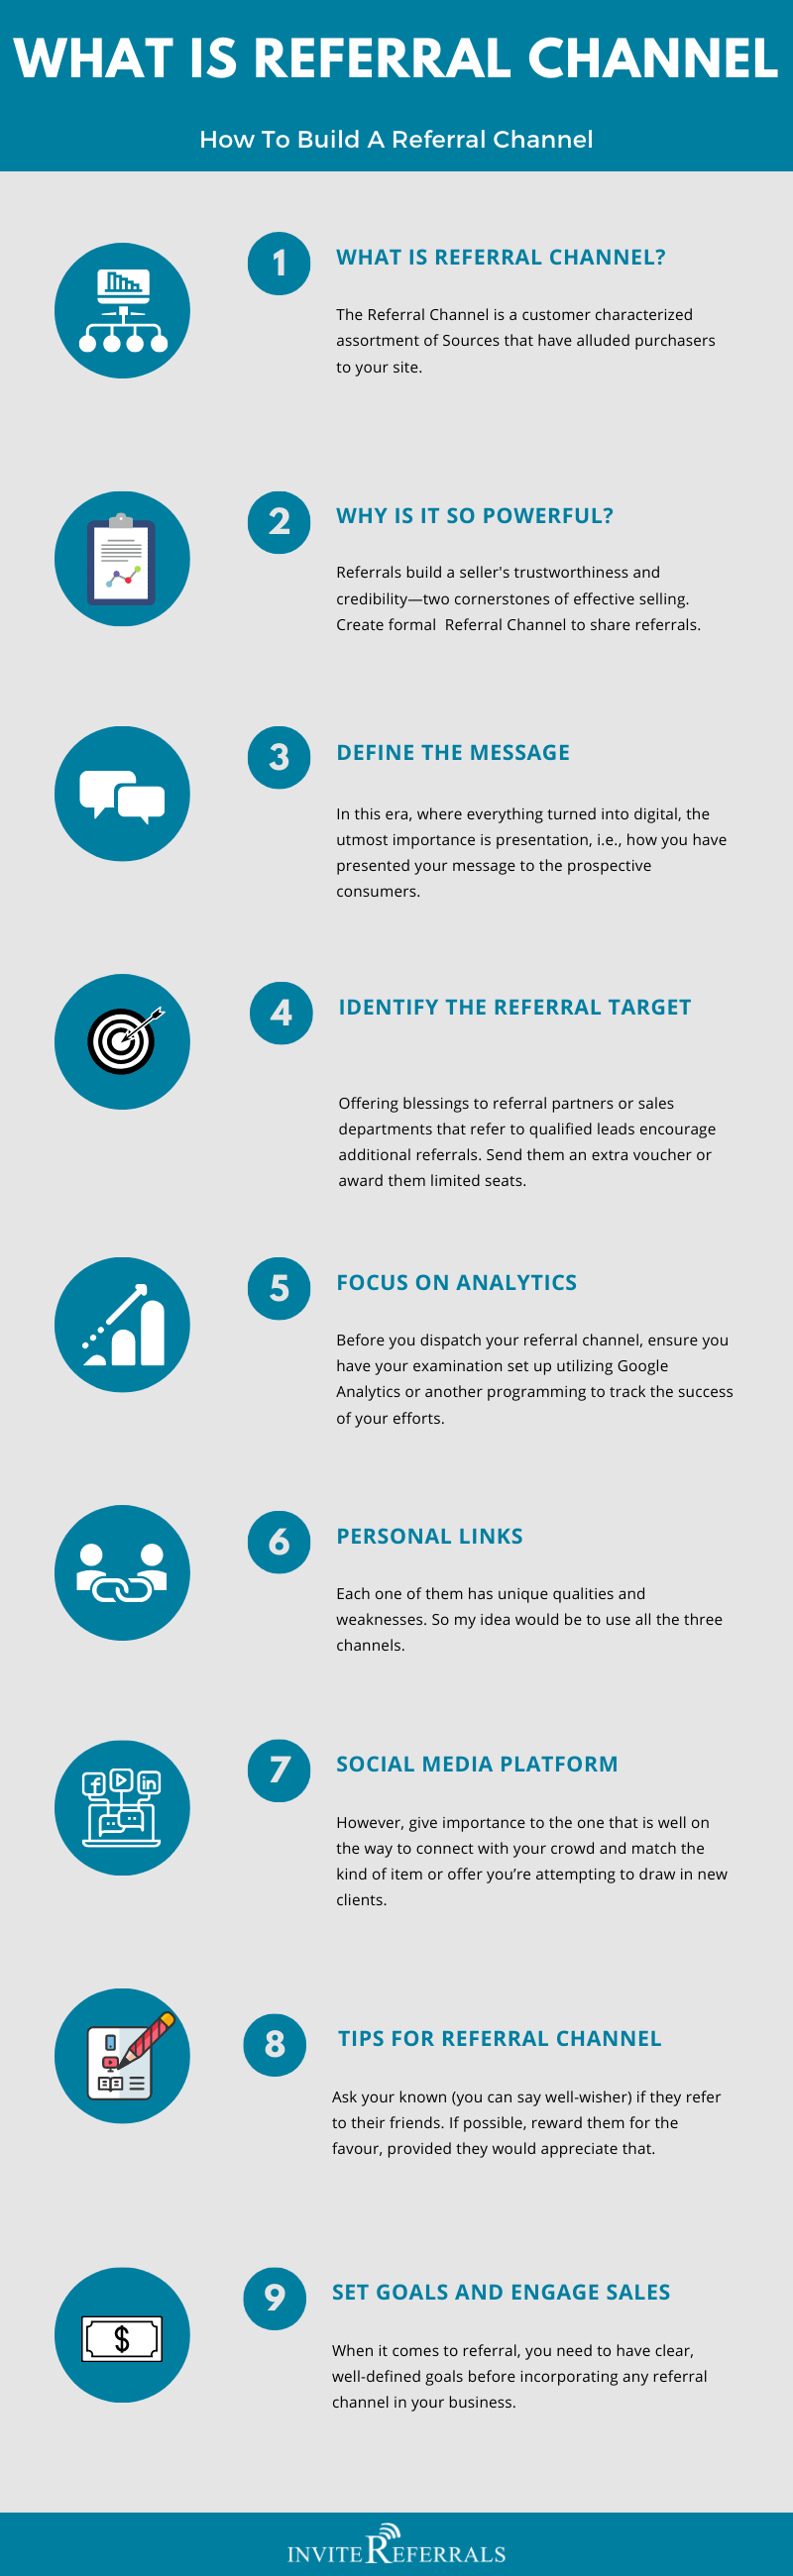 Referral channel infographic